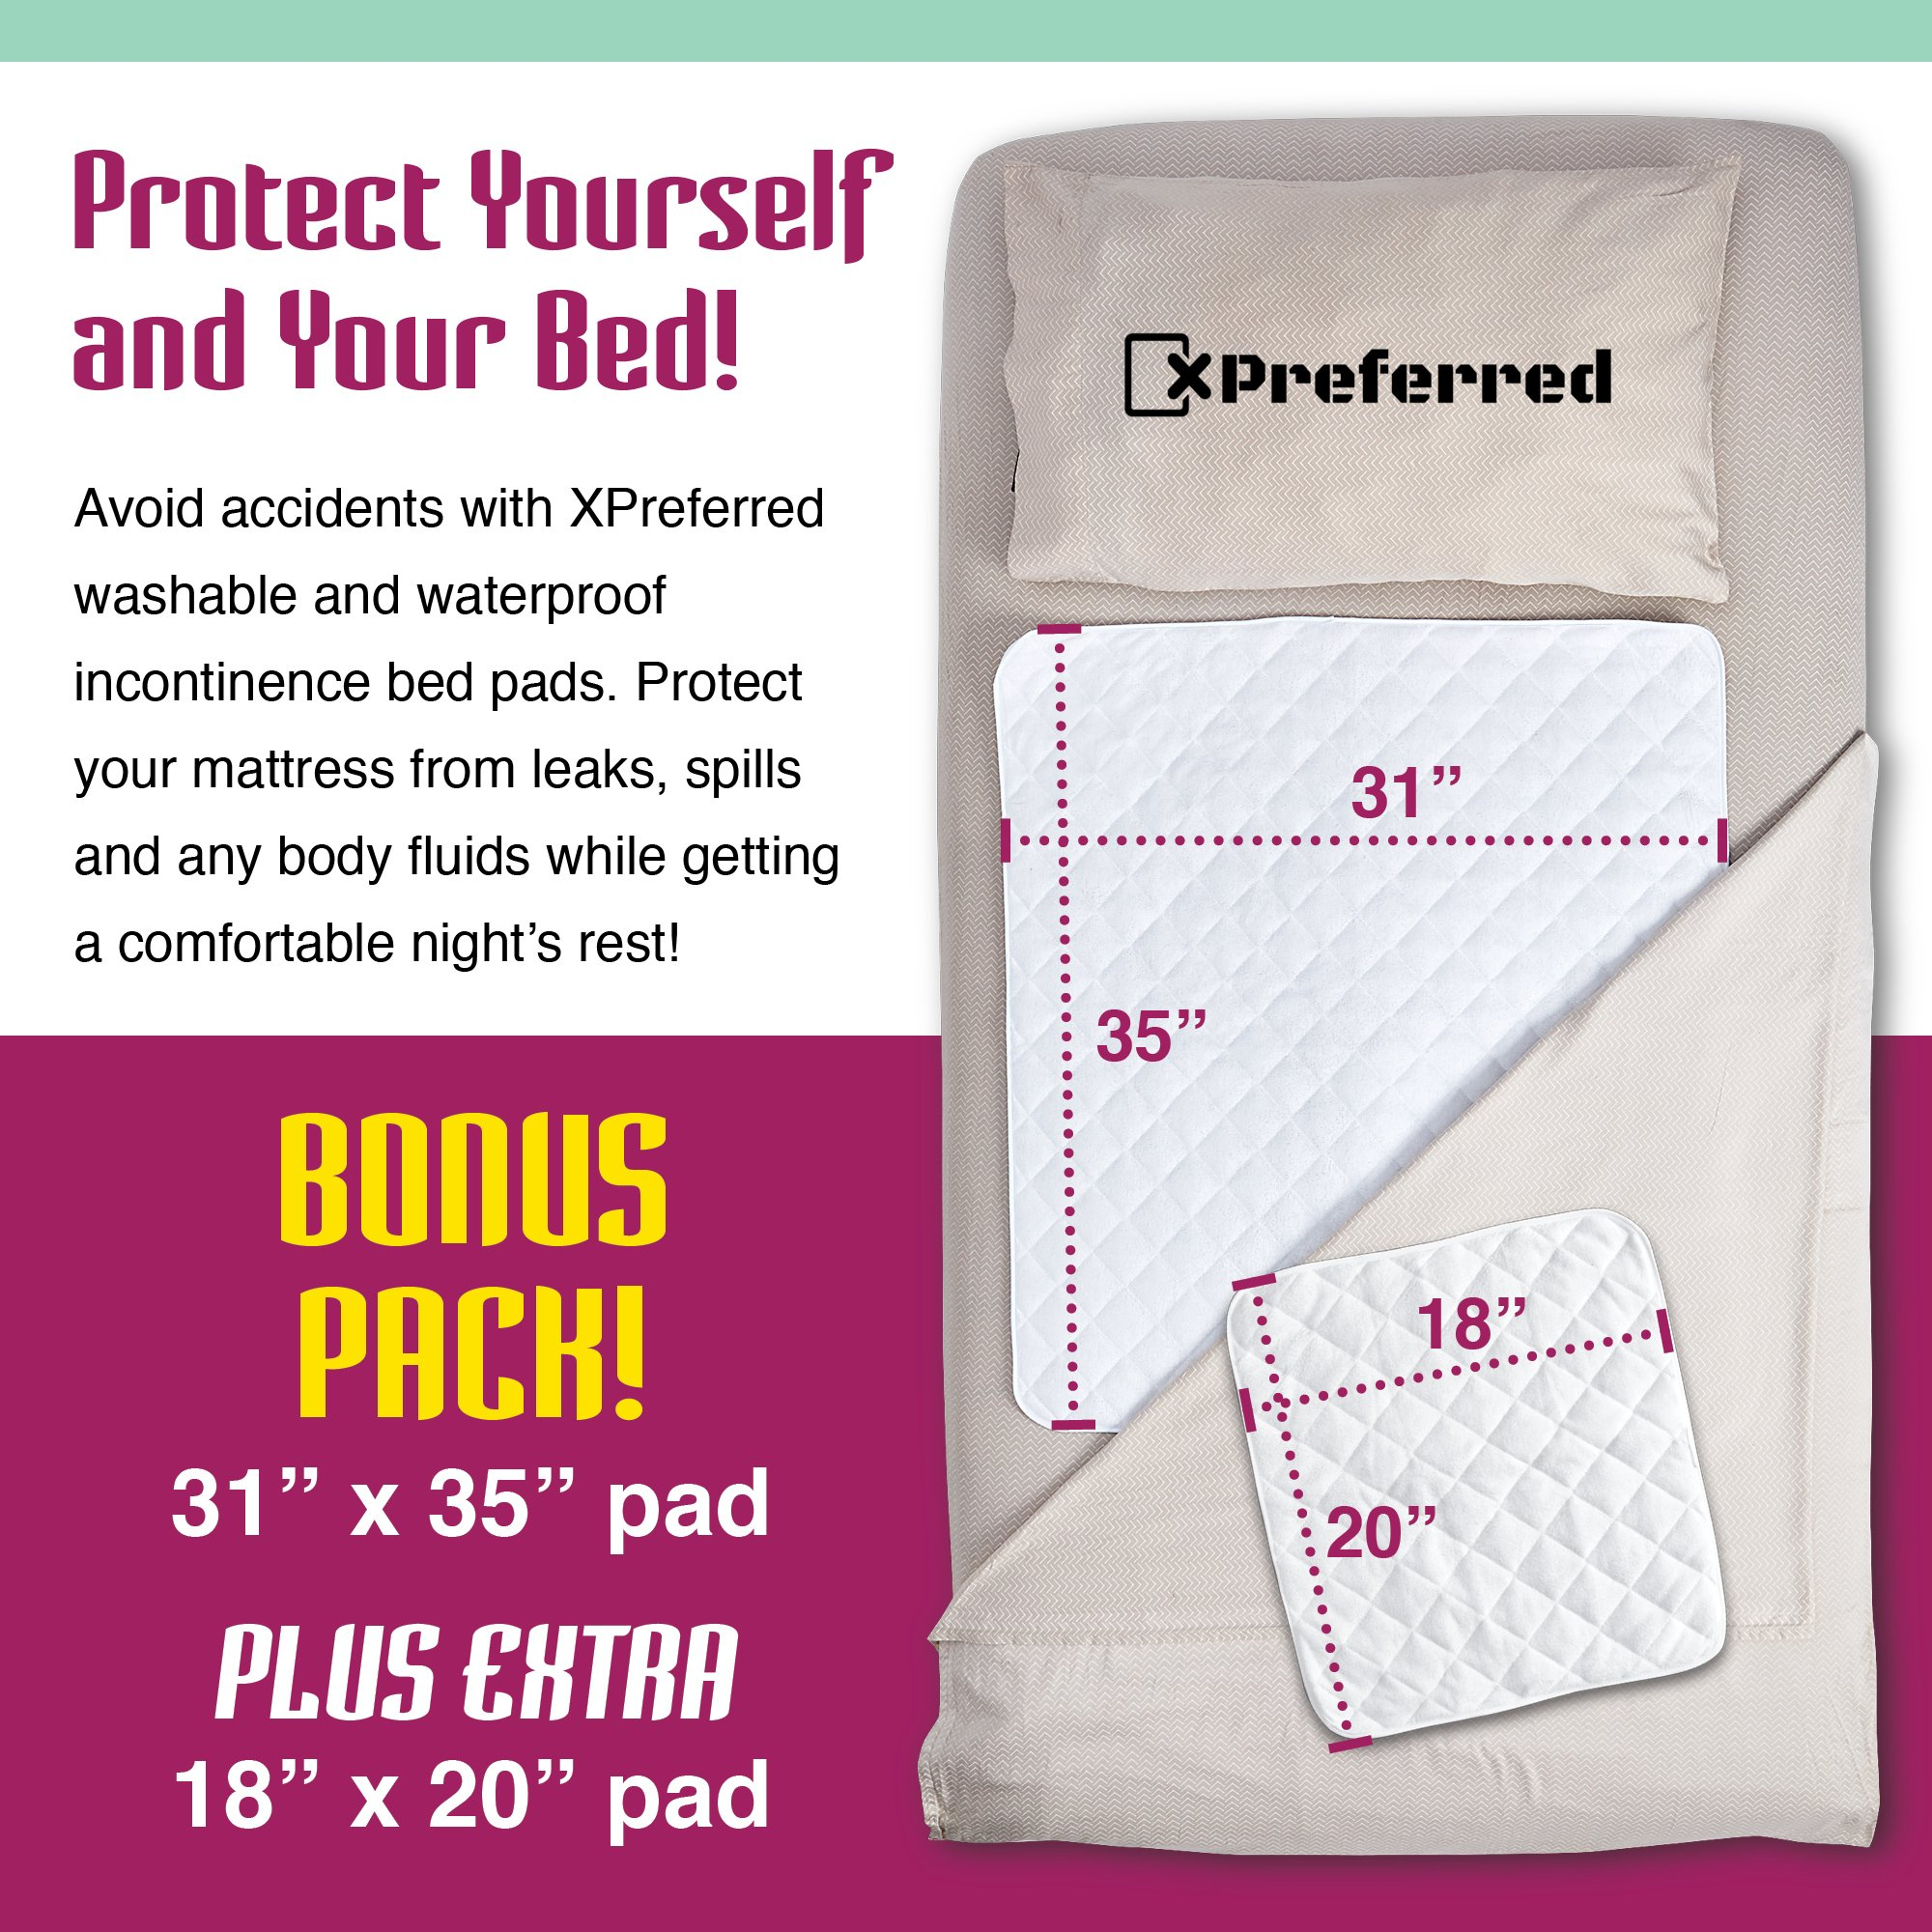 "2 Pack Waterproof Bed Pads - Mattress and Chair Protective Covers - Non Slip, Breathable, Hypoallergenic, Terry Cloth - Baby, Bed Wetting, Elderly, Pets – 31"" x 35"" and 18"" x 20"" - by X-Preferred by X-Preferred (Image #5)"